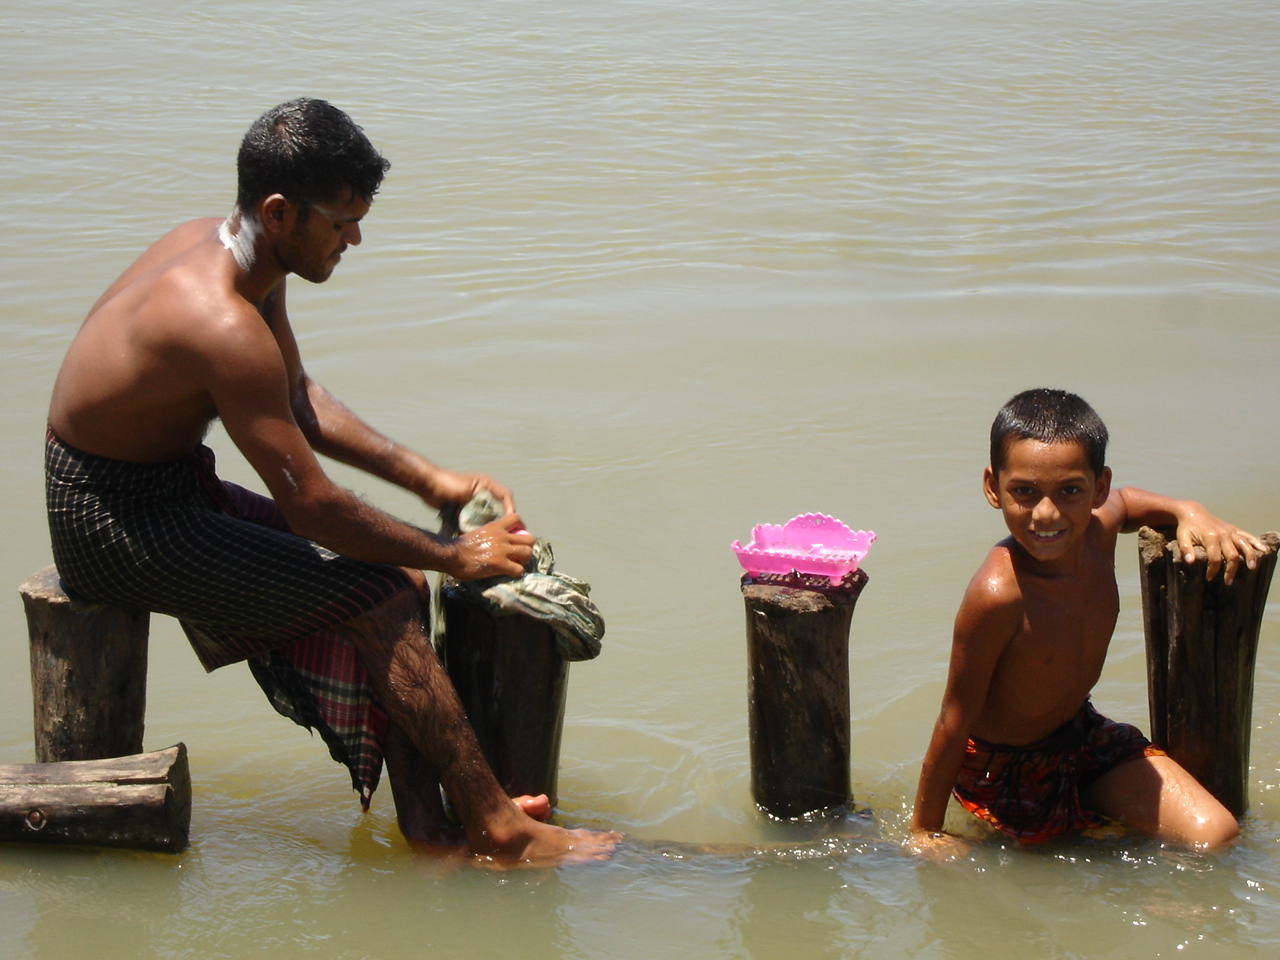 Living amongst water is a way of life in Bangladesh, one of the most flood-prone countries in the world. Approximately one-third of the country floods each year during the annual summer monsoon season.